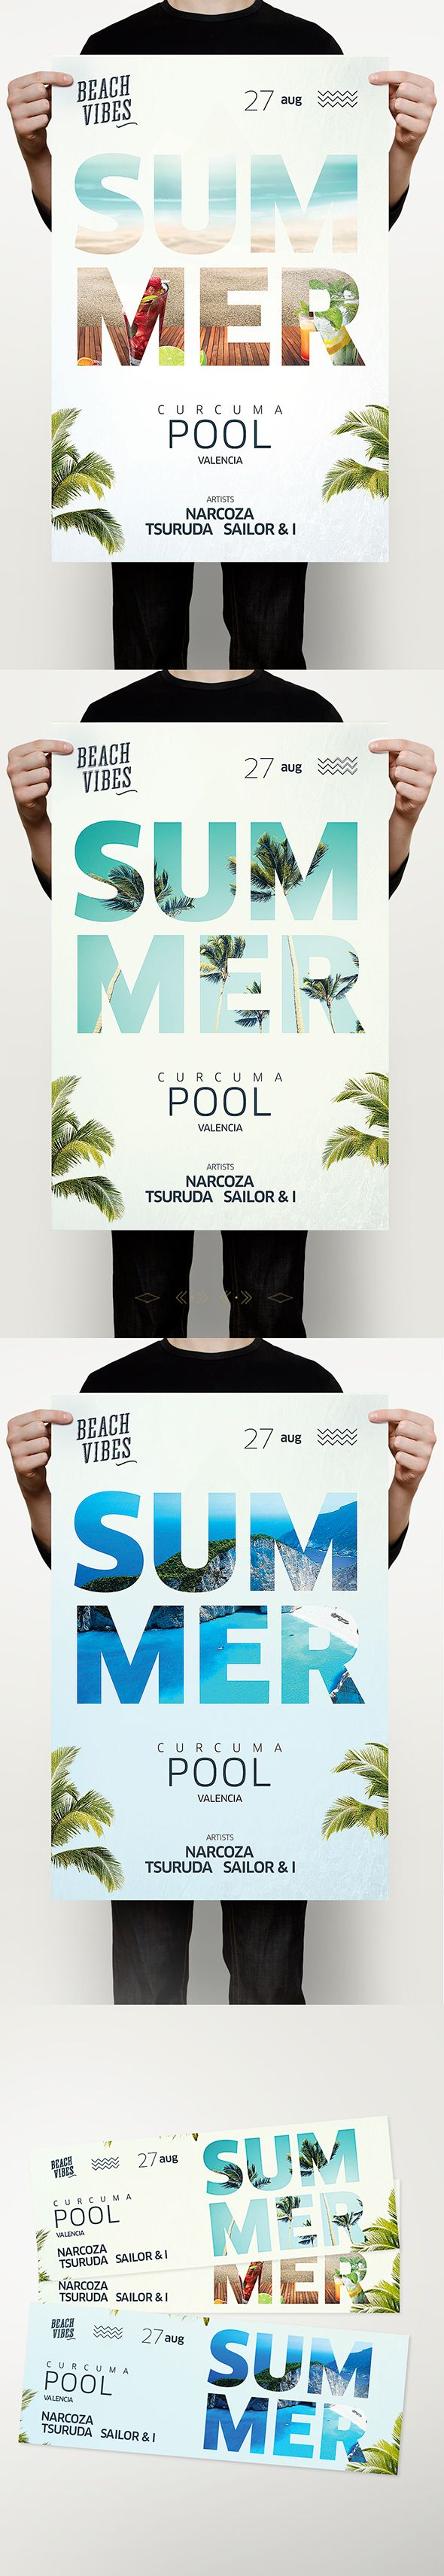 Poster design ideas for school projects - Check Out This Behance Project Summer Pool Template Https